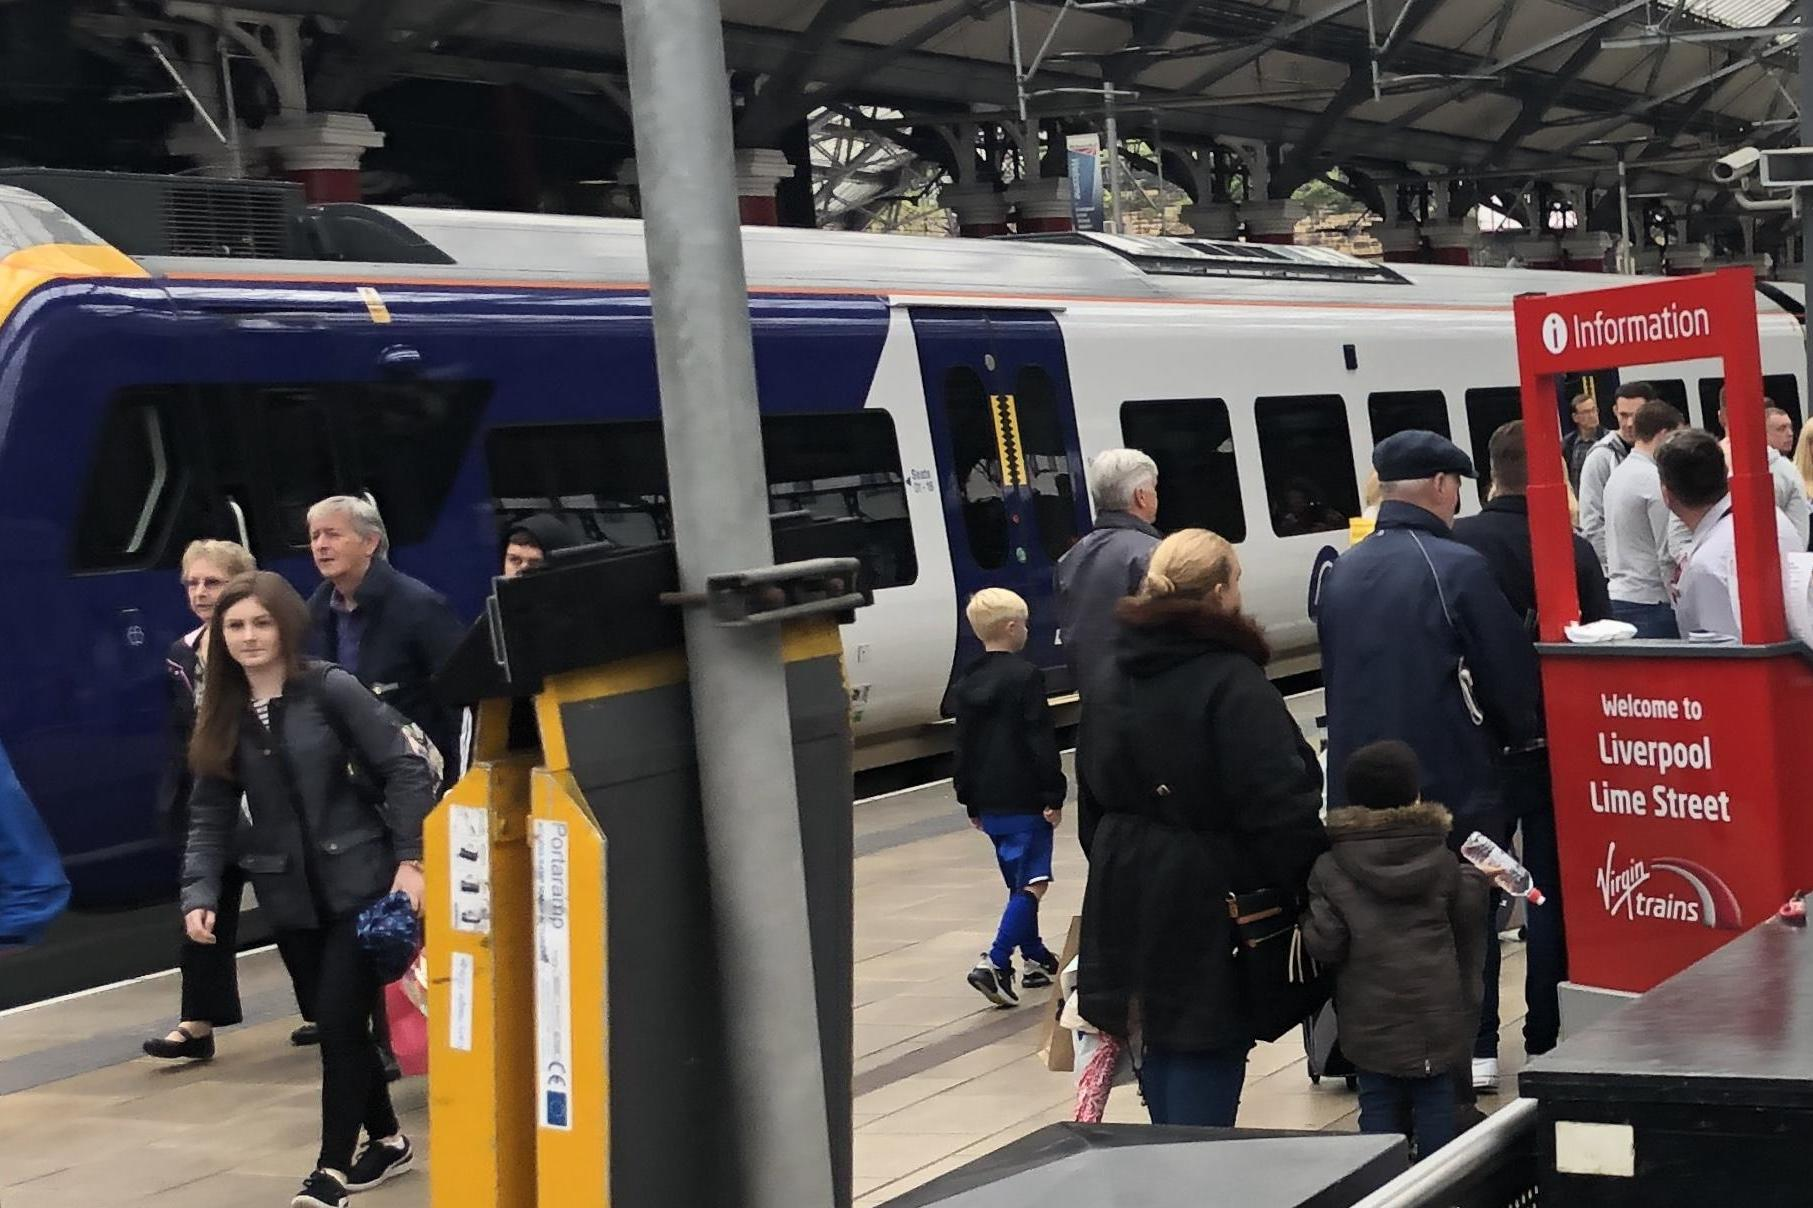 Rail passengers in northwest England disrupted on busy travel weekend